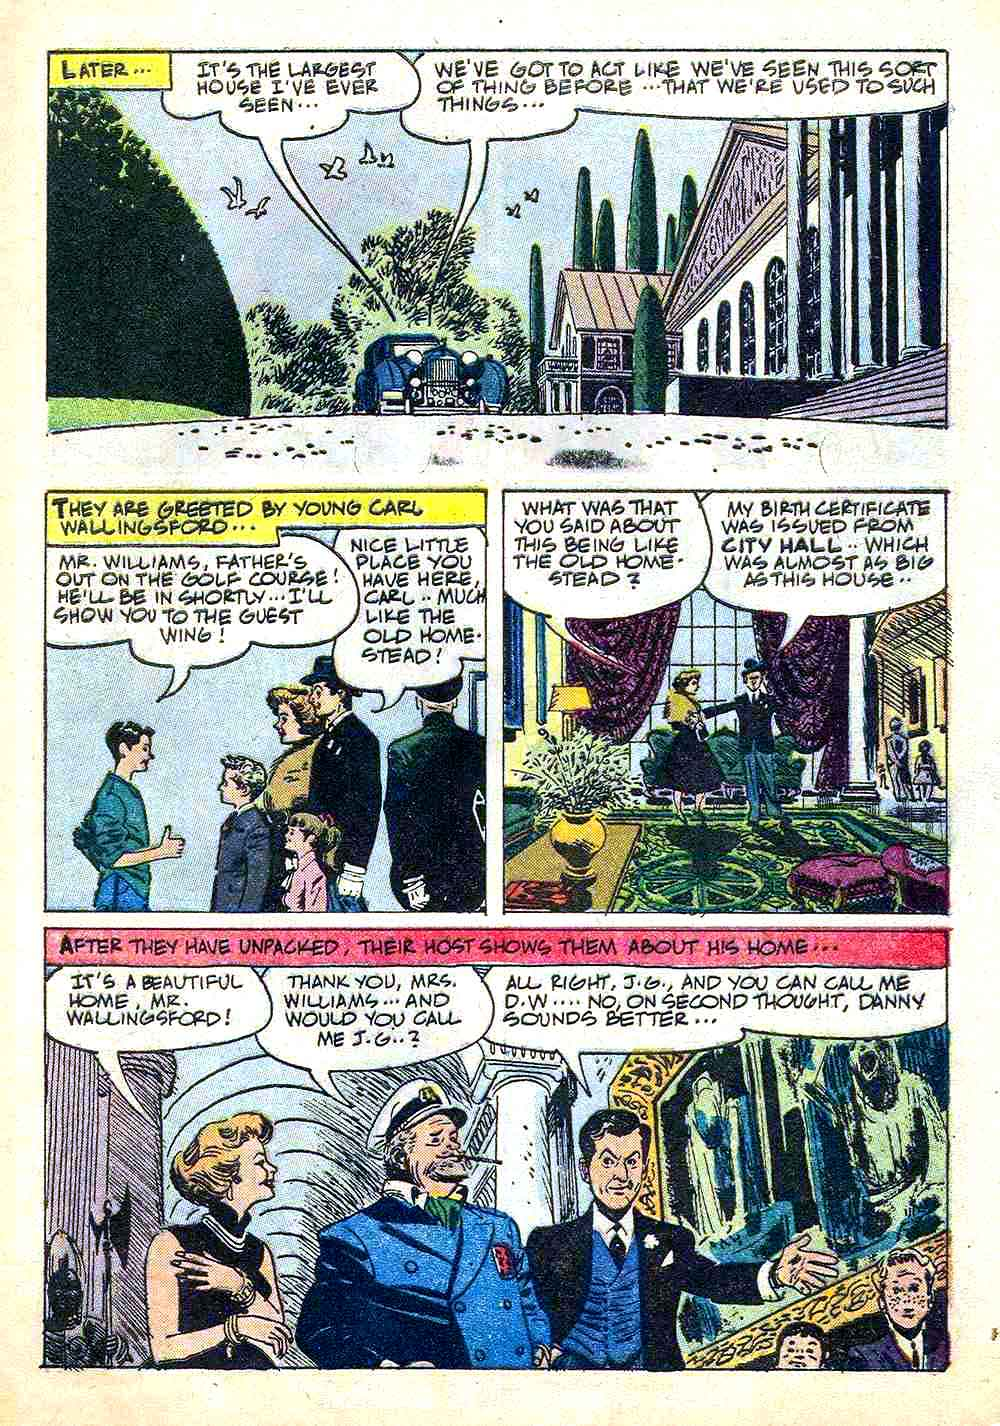 The Danny Thomas Show / Four Color Comics #1180 dell comic book page art by Alex Toth